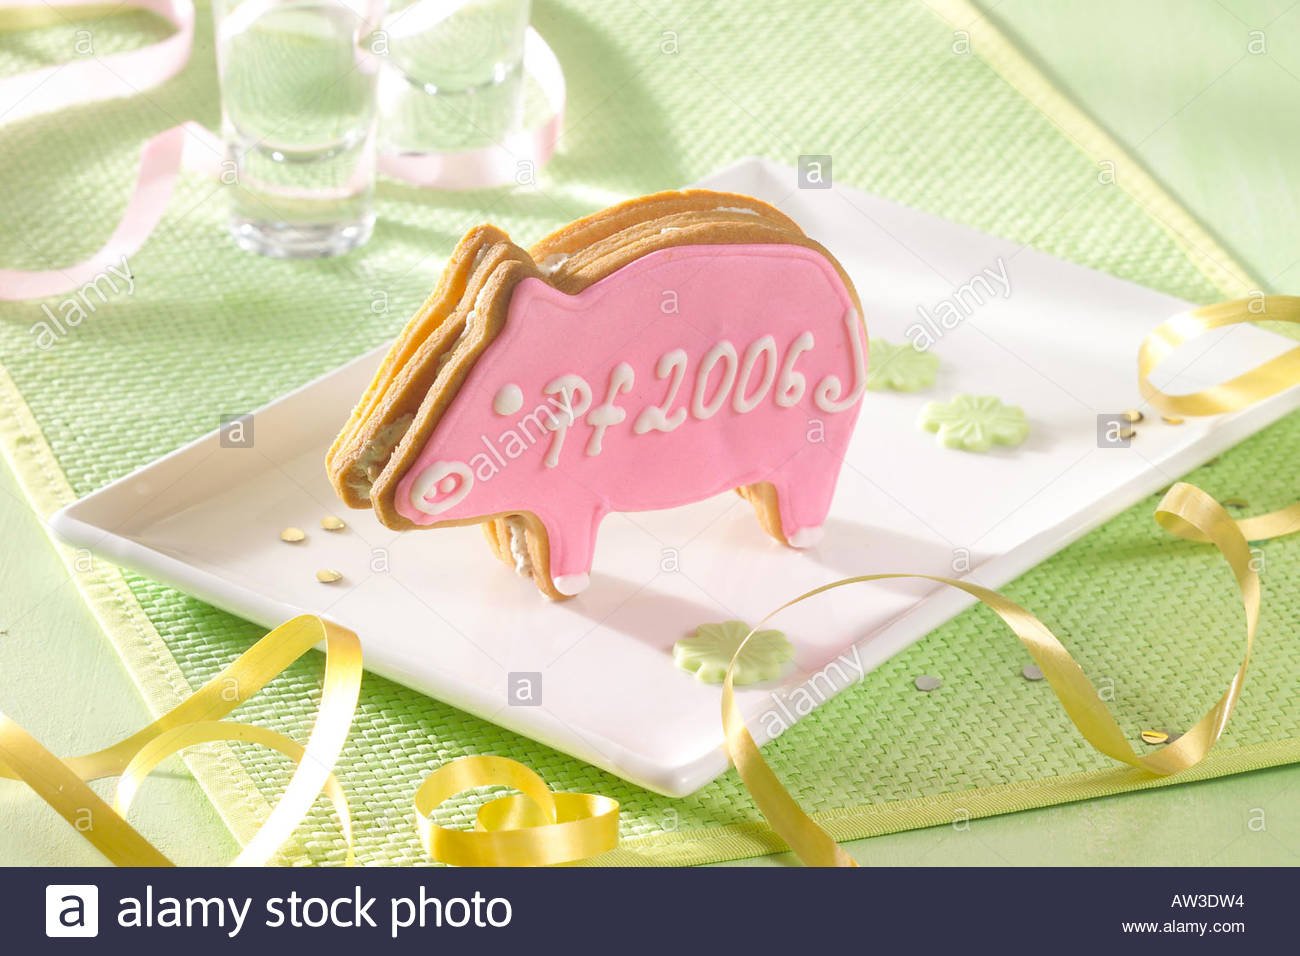 Feliciter Stock Photos & Feliciter Stock Images - Alamy